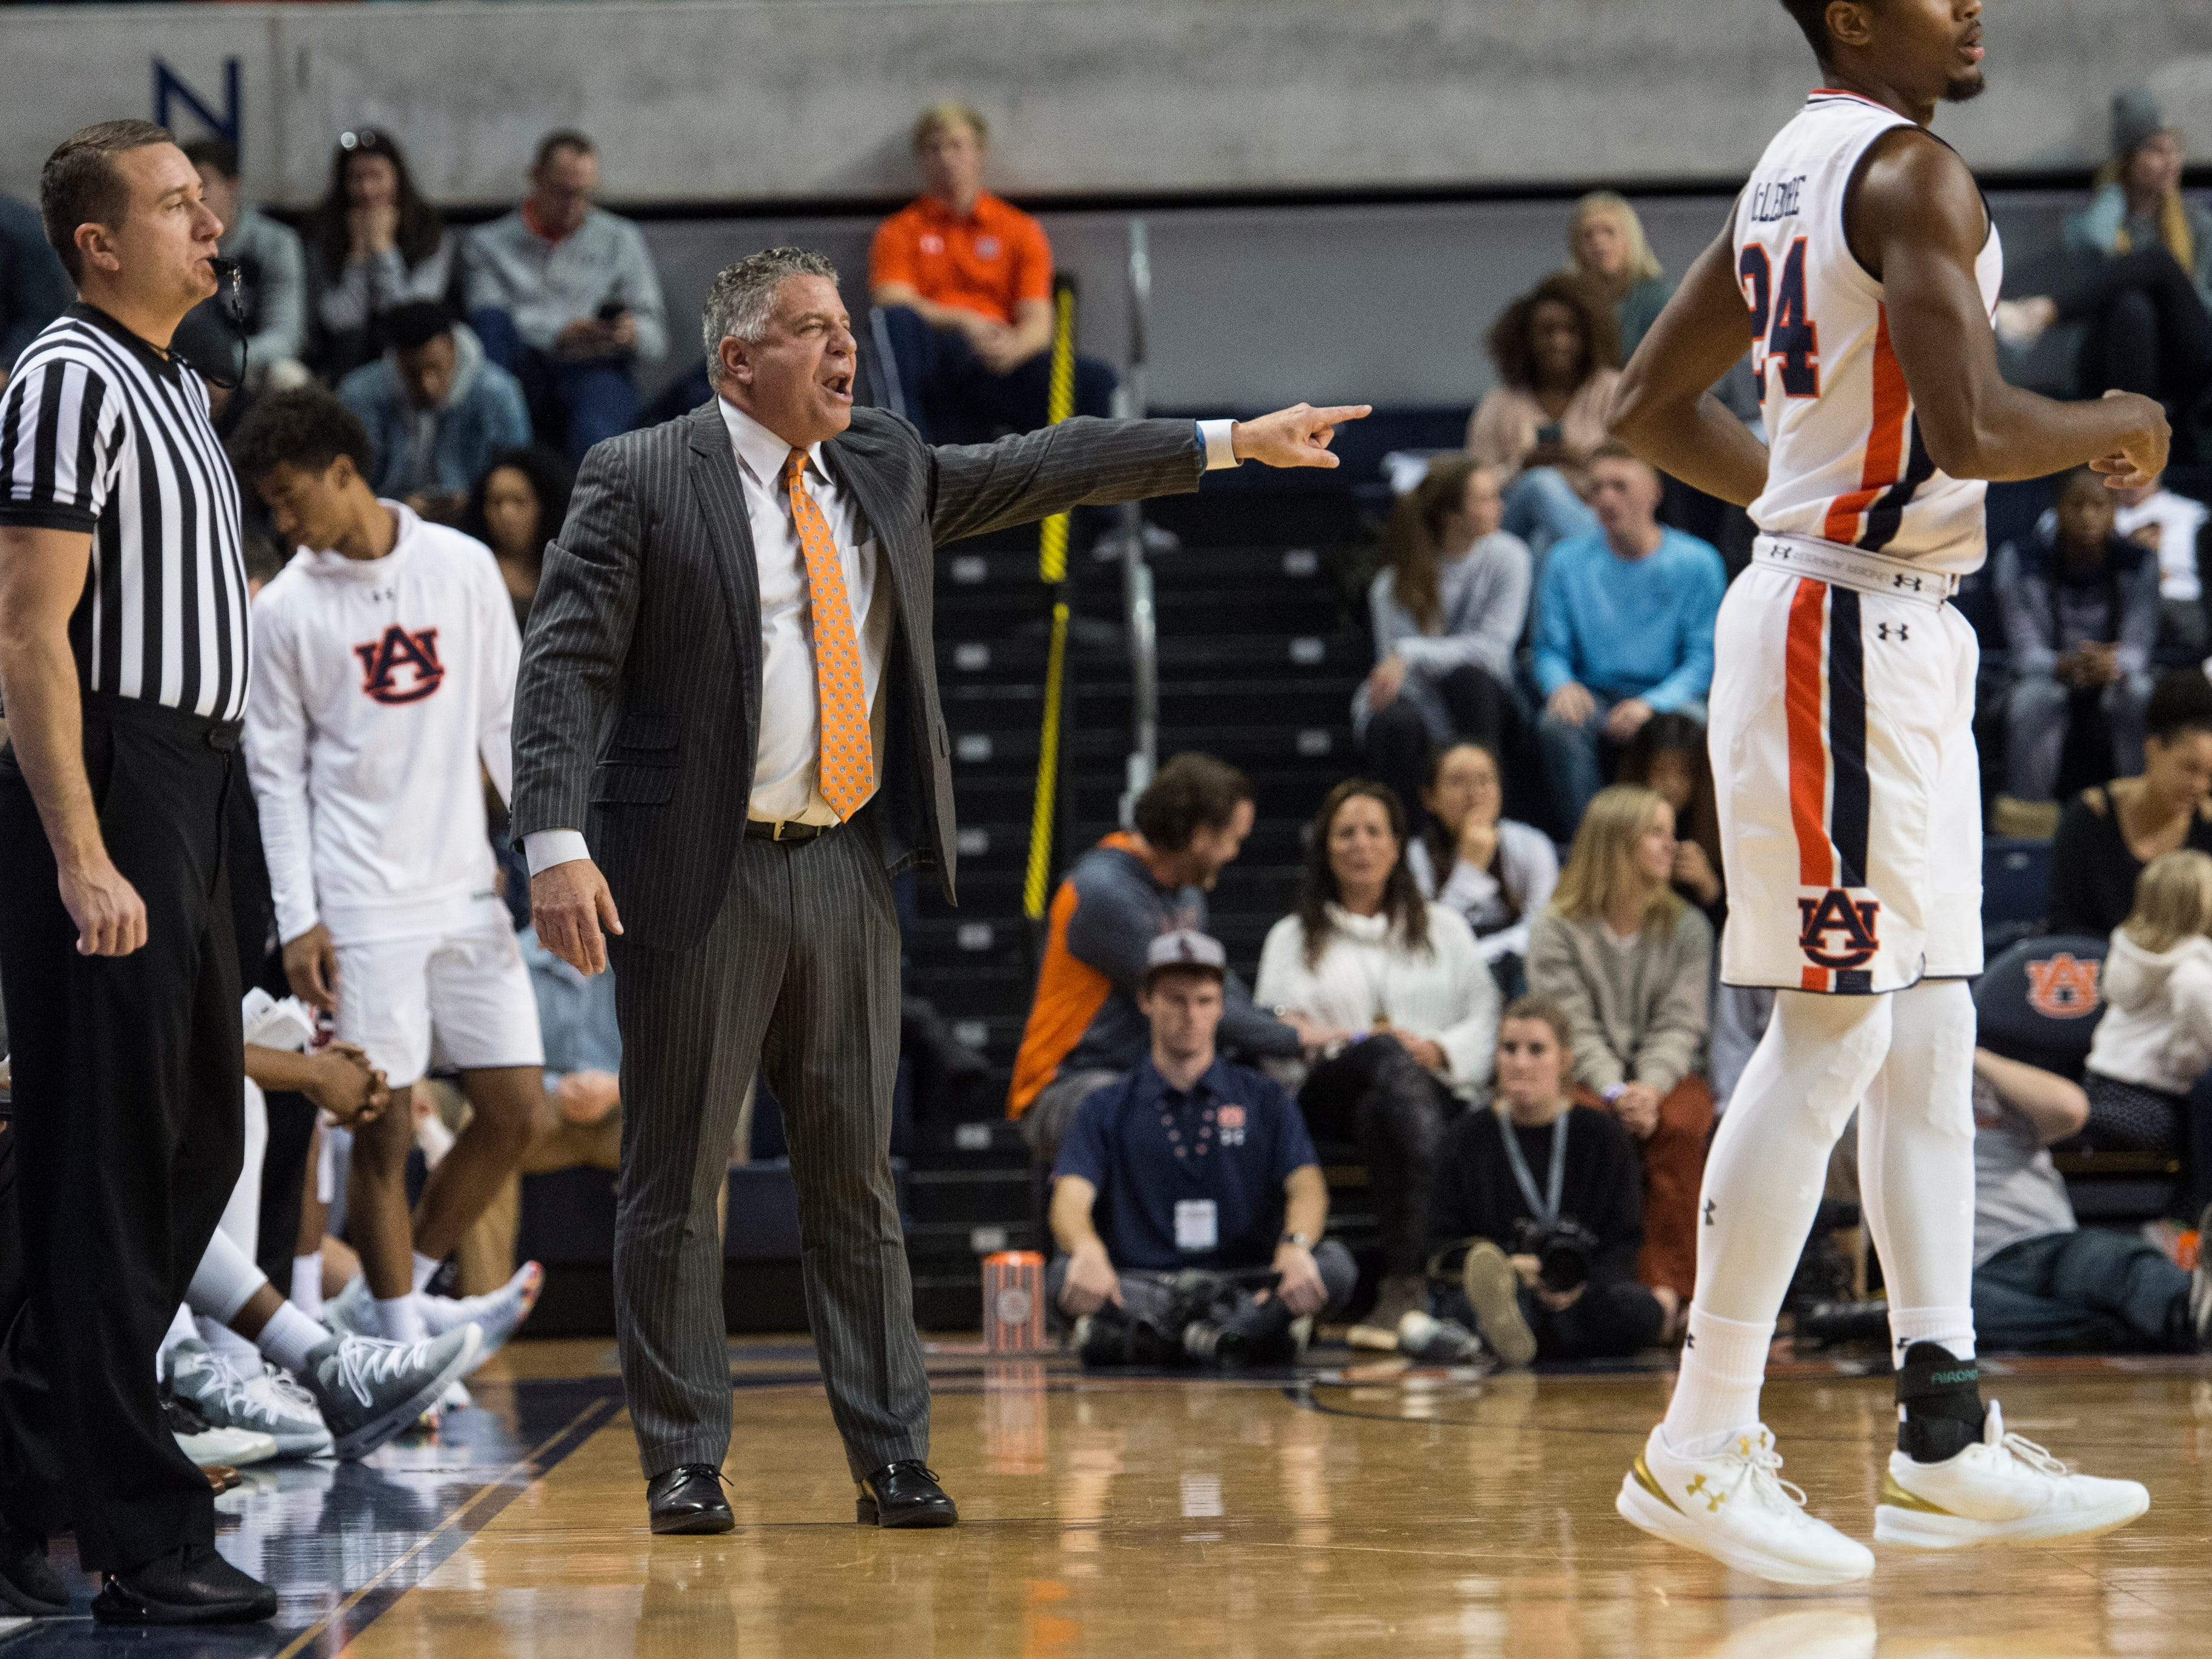 Auburn head coach Bruce Pearl yells at the players from the bench at Auburn Arena in Auburn, Ala., on Wednesday, Nov. 28, 2018. Auburn defeated Saint Peter's 99-49.